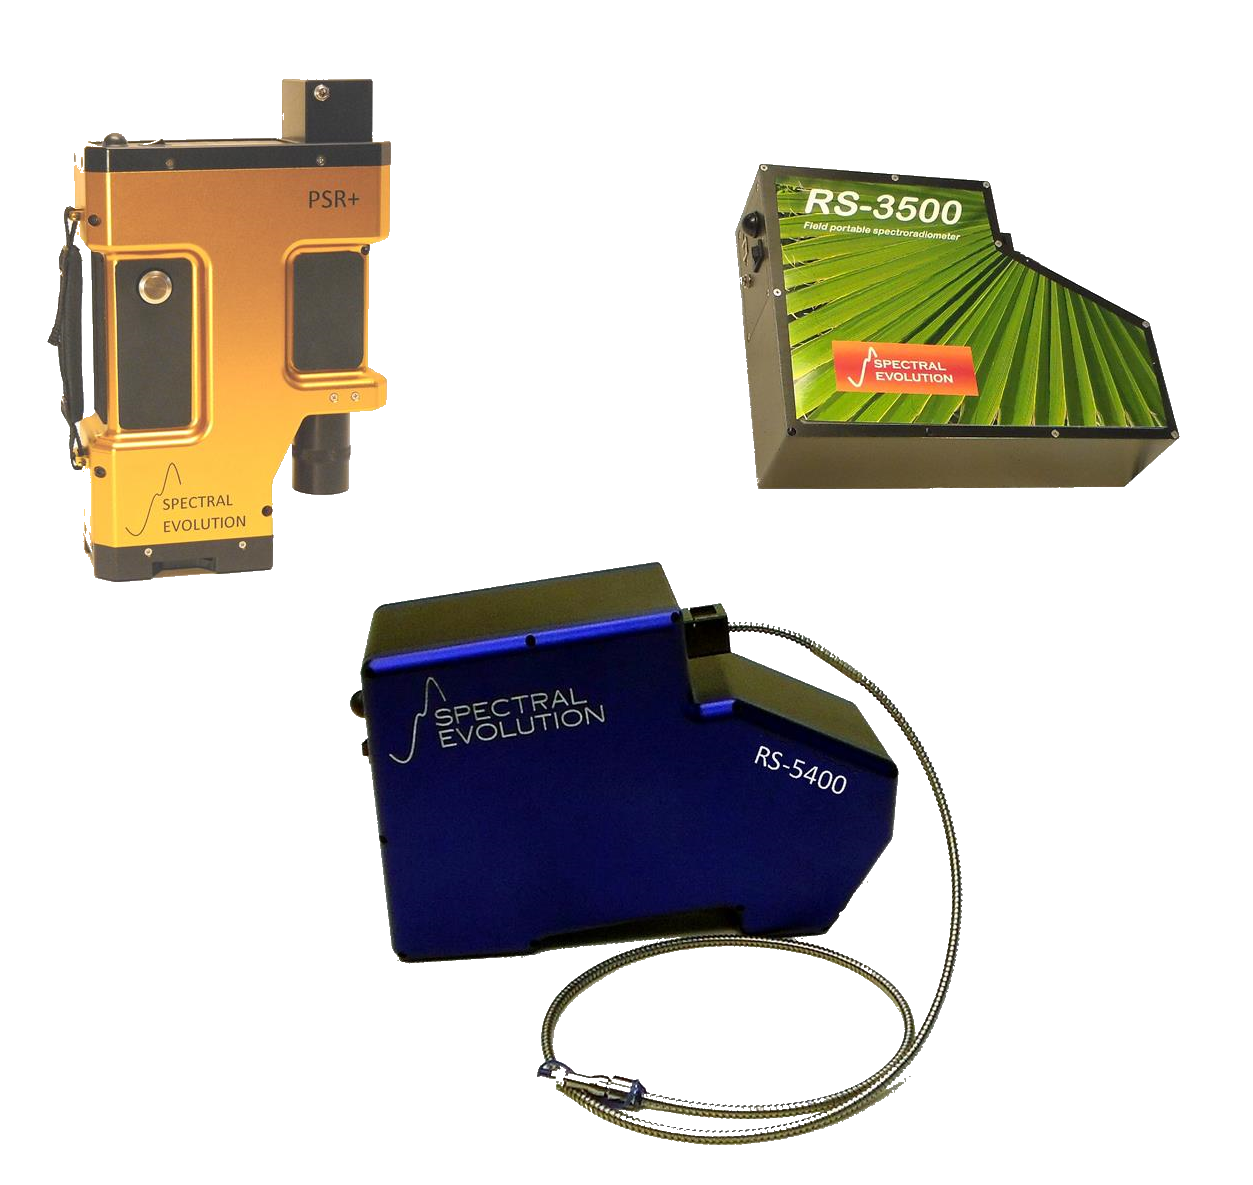 Field portable spectroradiometers for remote sensing